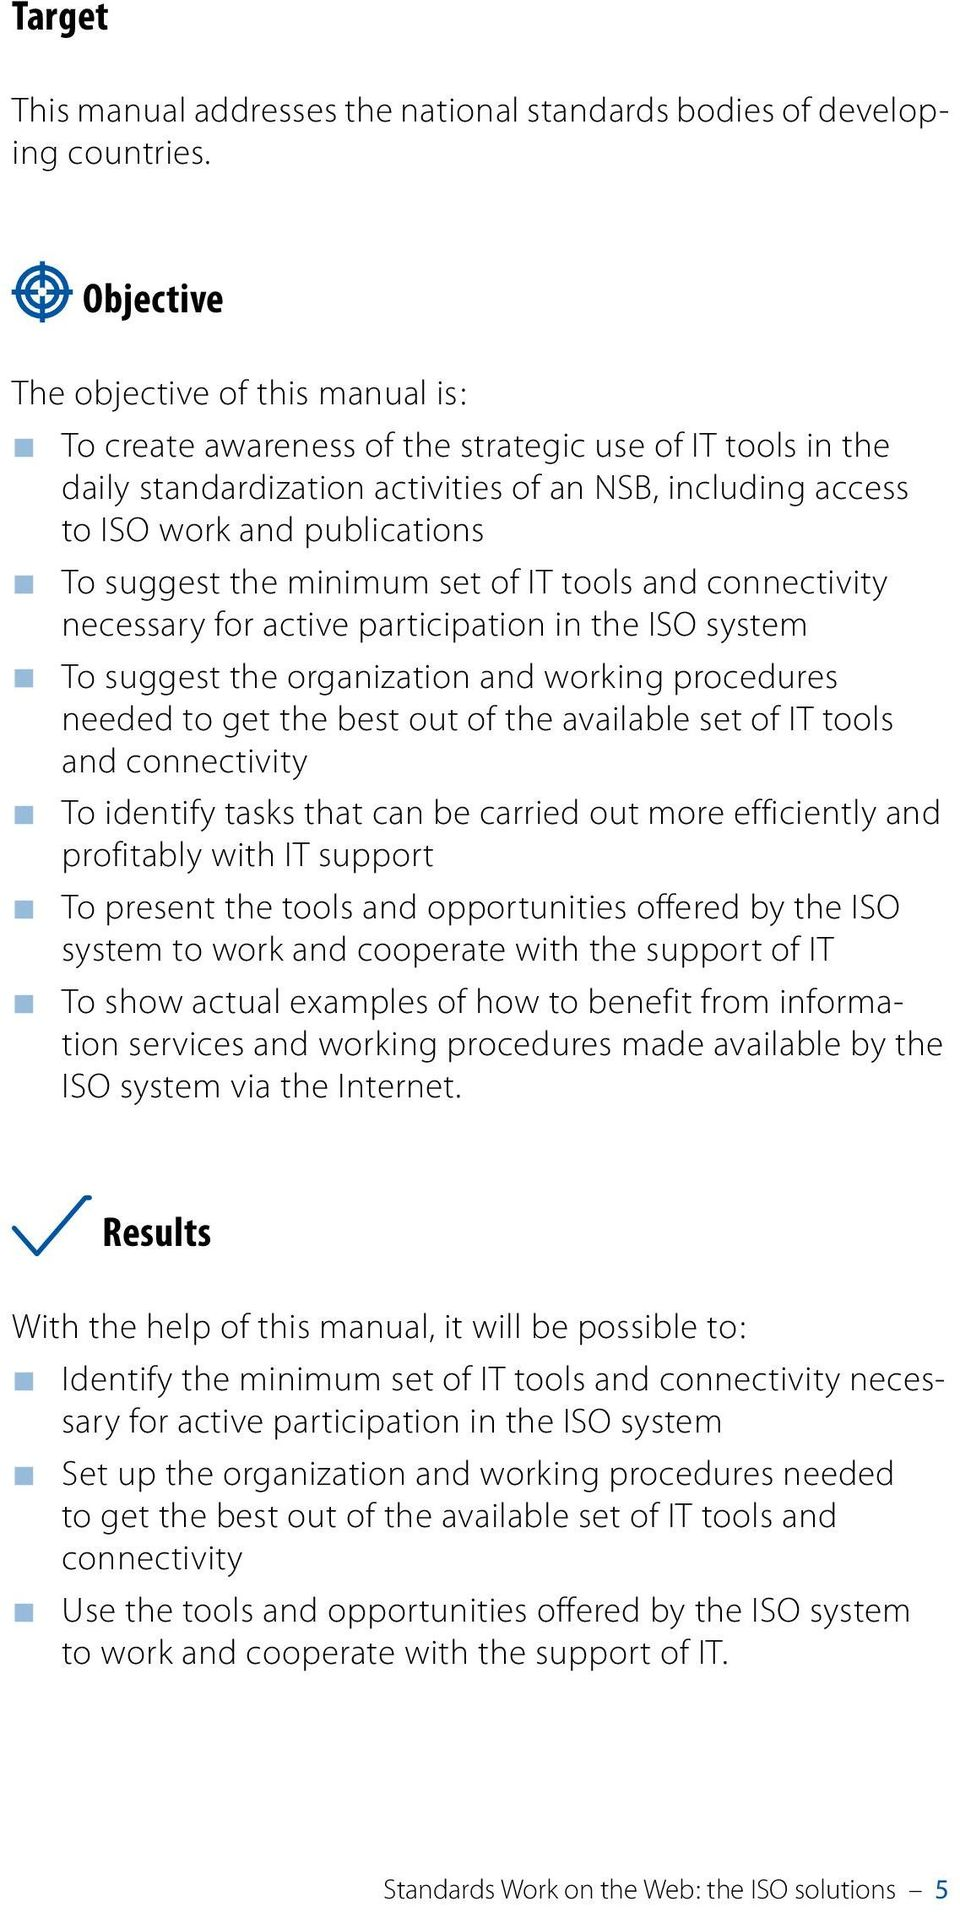 suggest the minimum set of IT tools and connectivity necessary for active participation in the ISO system to suggest the organization and working procedures needed to get the best out of the